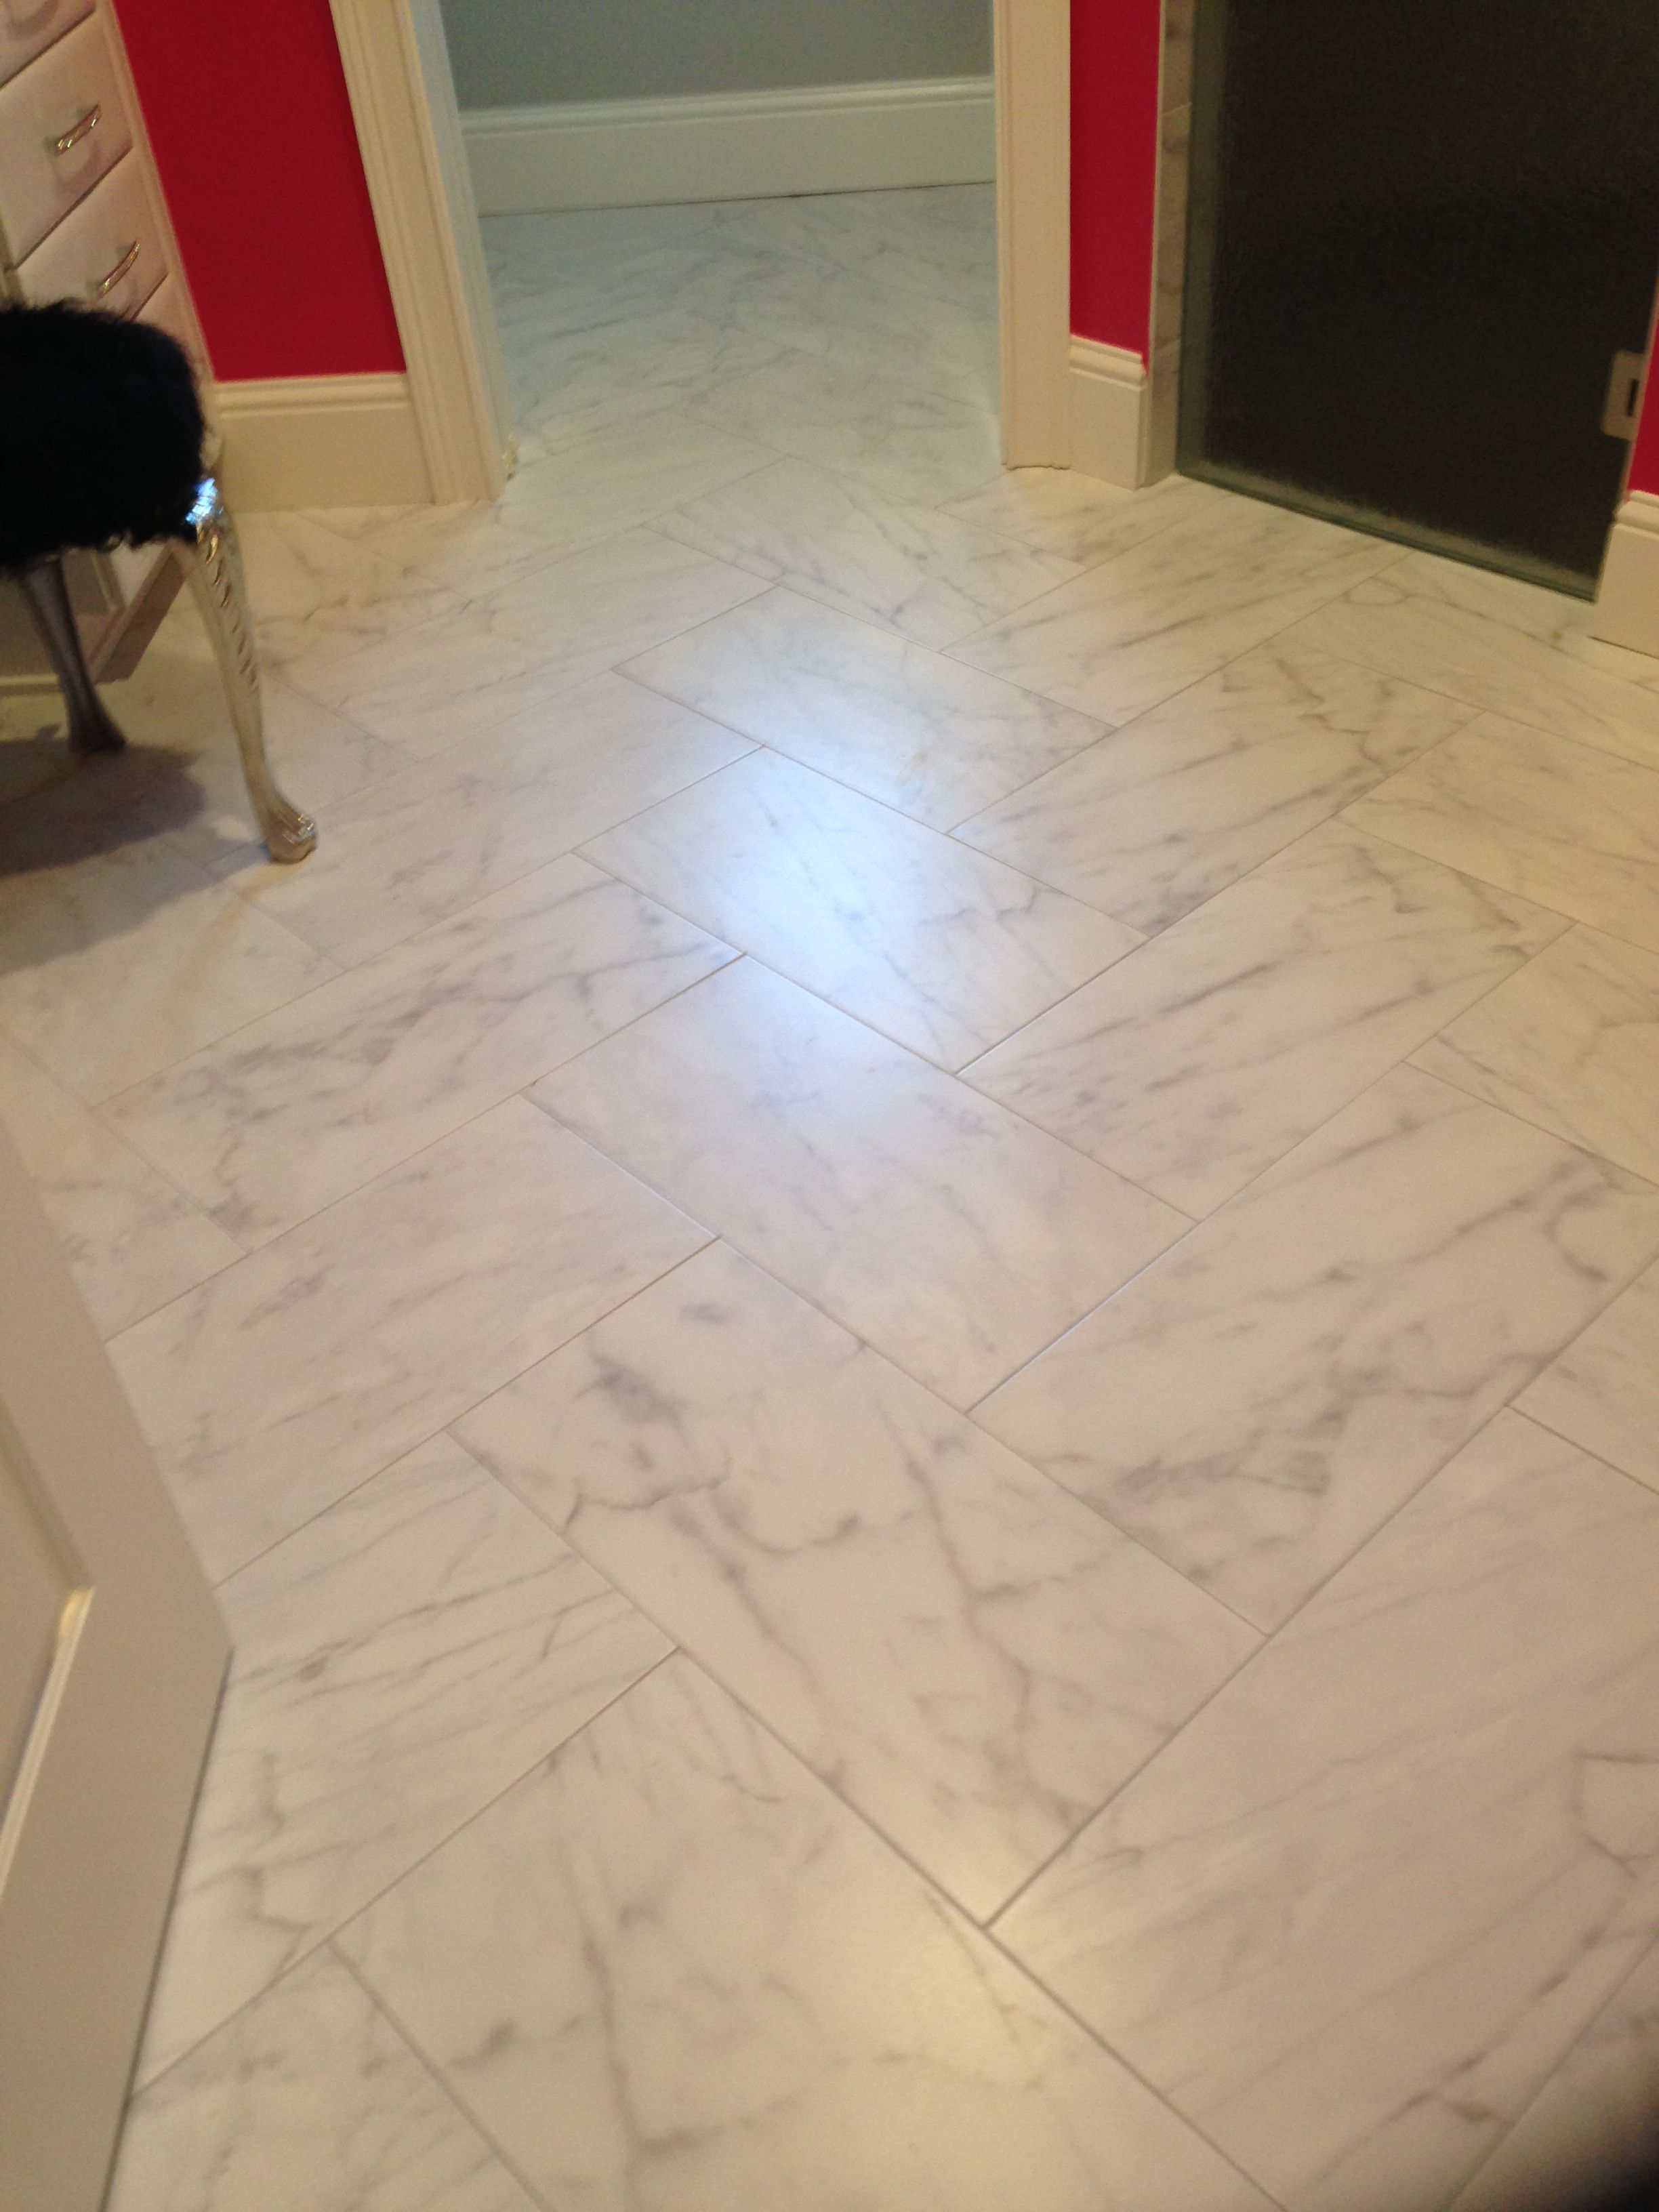 12 x 24 Carrara look porcelain tile in herringbone pattern | My Tile ...